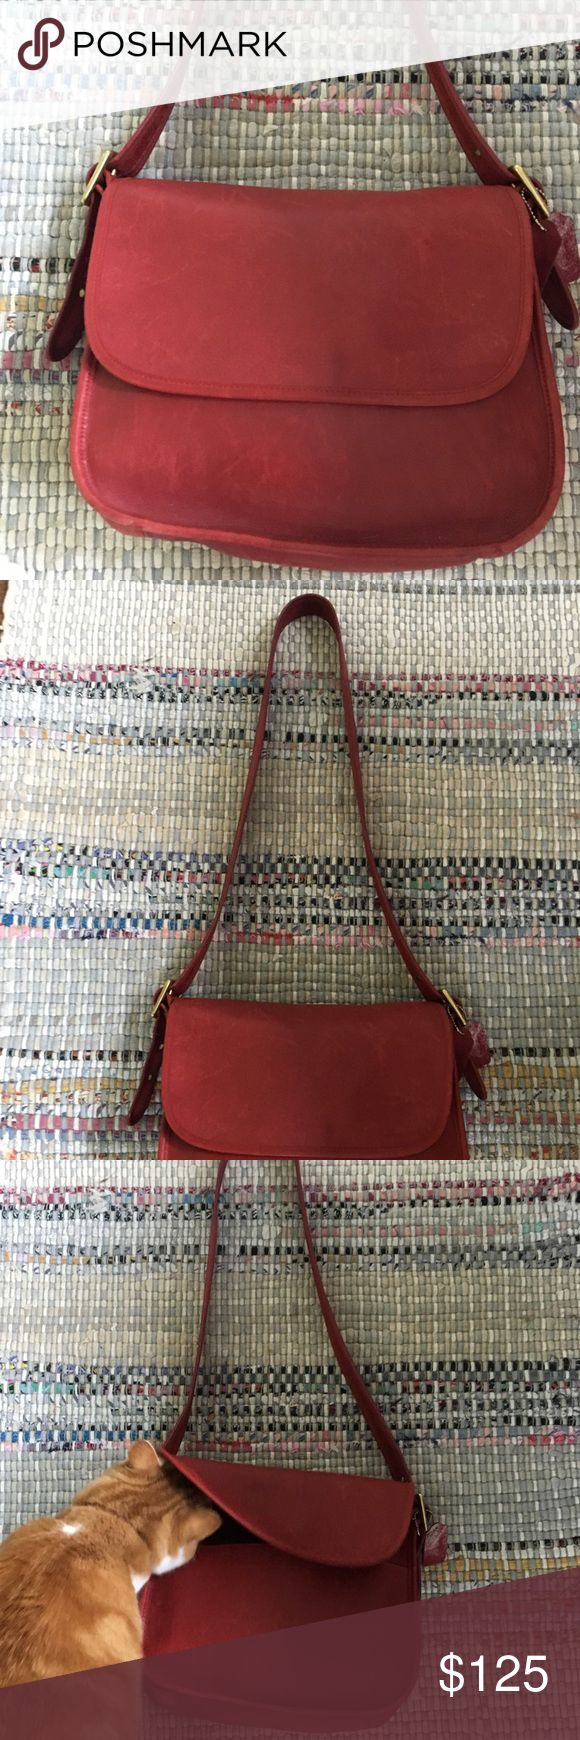 Vintage MADE IN USA red leather Coach Saddle Bag Buttery leather 1970/ vintage red coach saddle bag. Made in the USA. It has that delicious well-loved look with 1 large zipper pocket with two smaller pockets under the flap. Gold hardware with coach tag (tag is split- see picture) Coach Bags Crossbody Bags